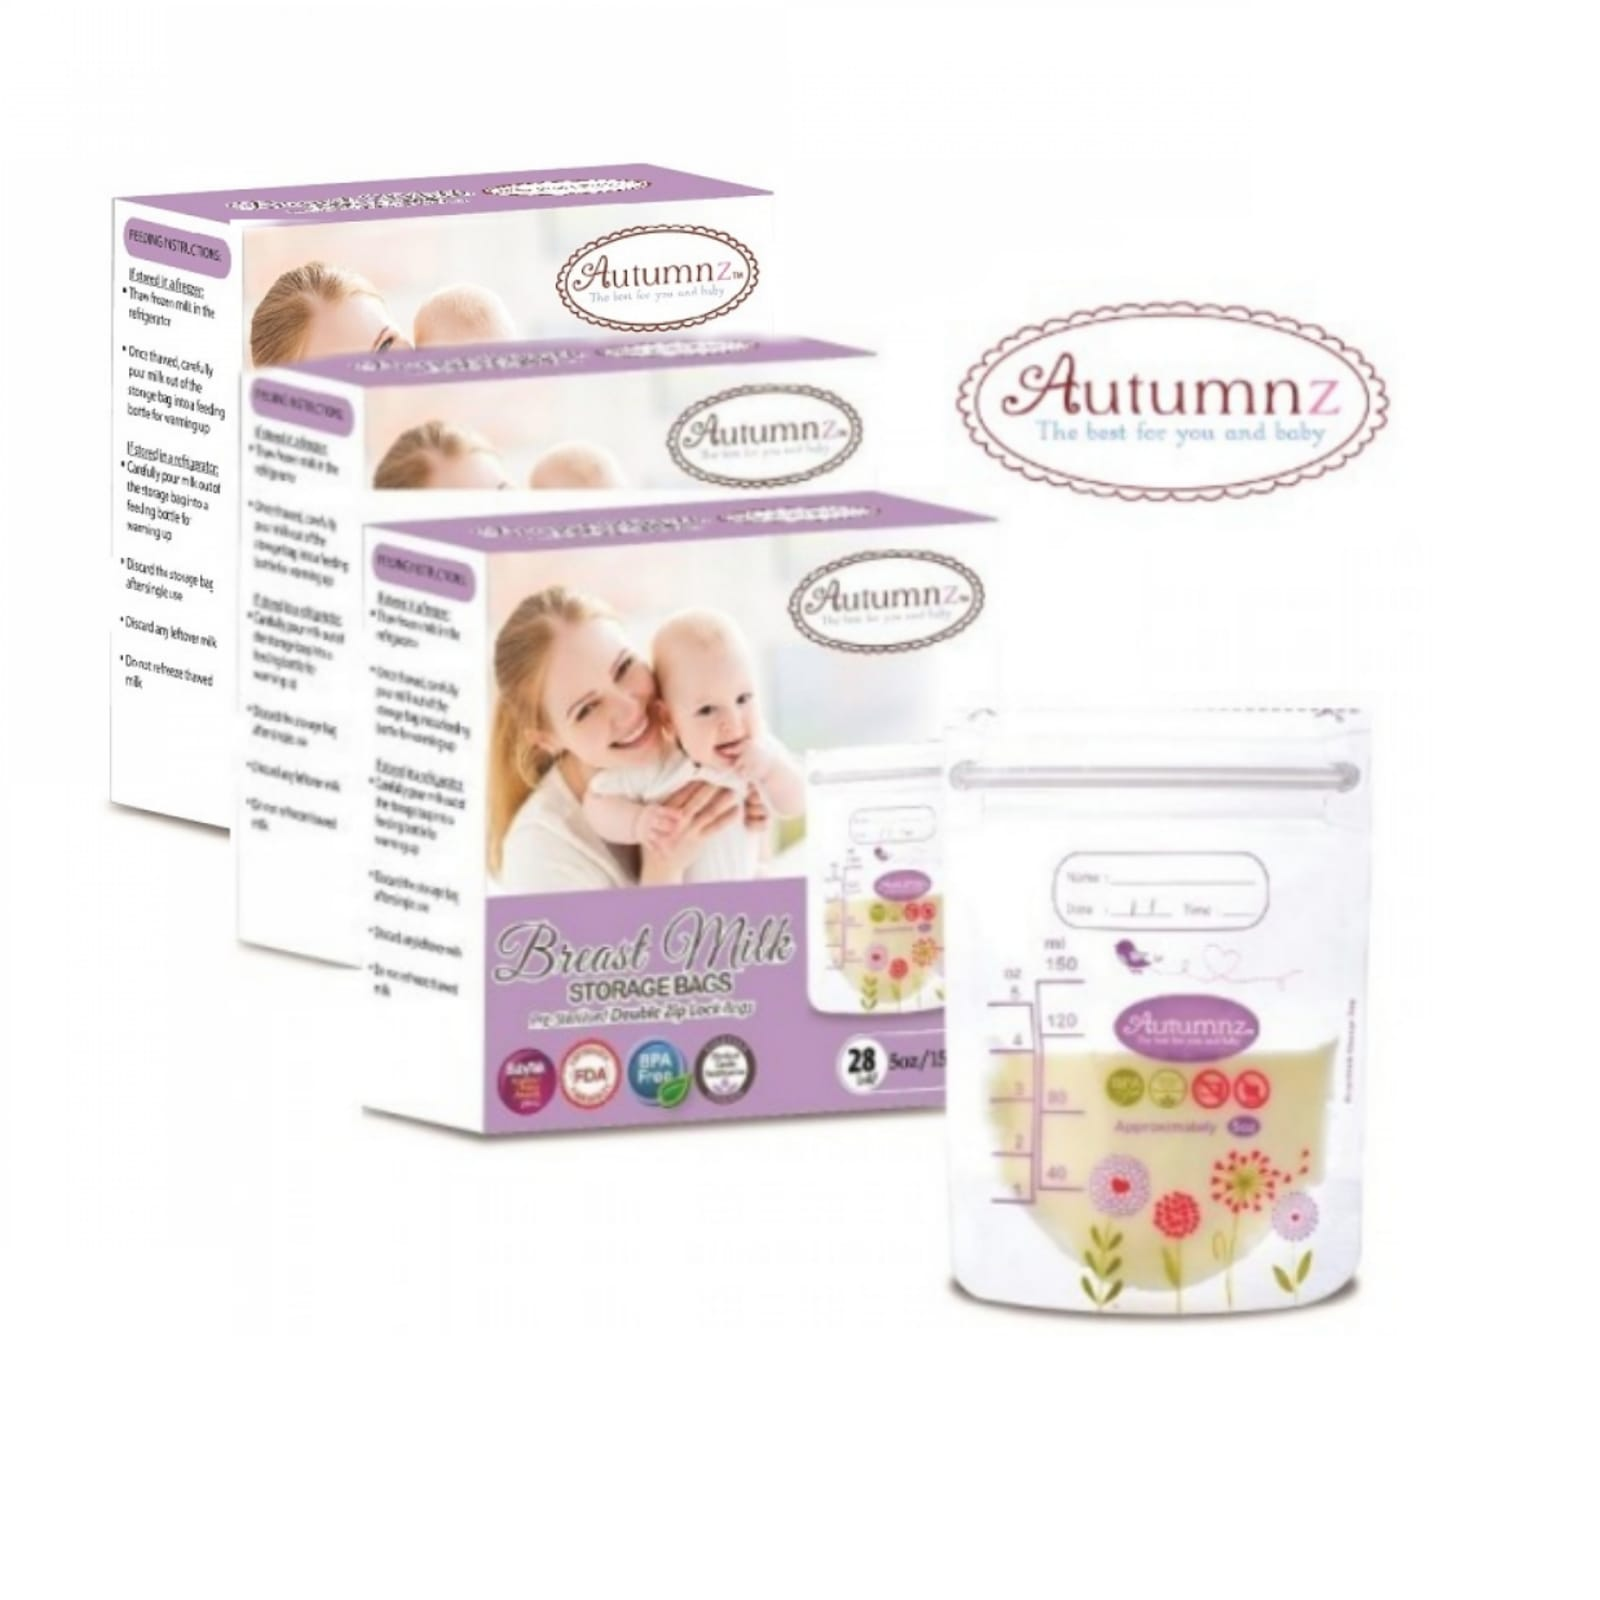 5 / 7 / 10 / 12oz *3 boxes 84 bags* Autumnz Breast milk Breastmilk storage bags *Sterilized BPA Free Double zip lock bags